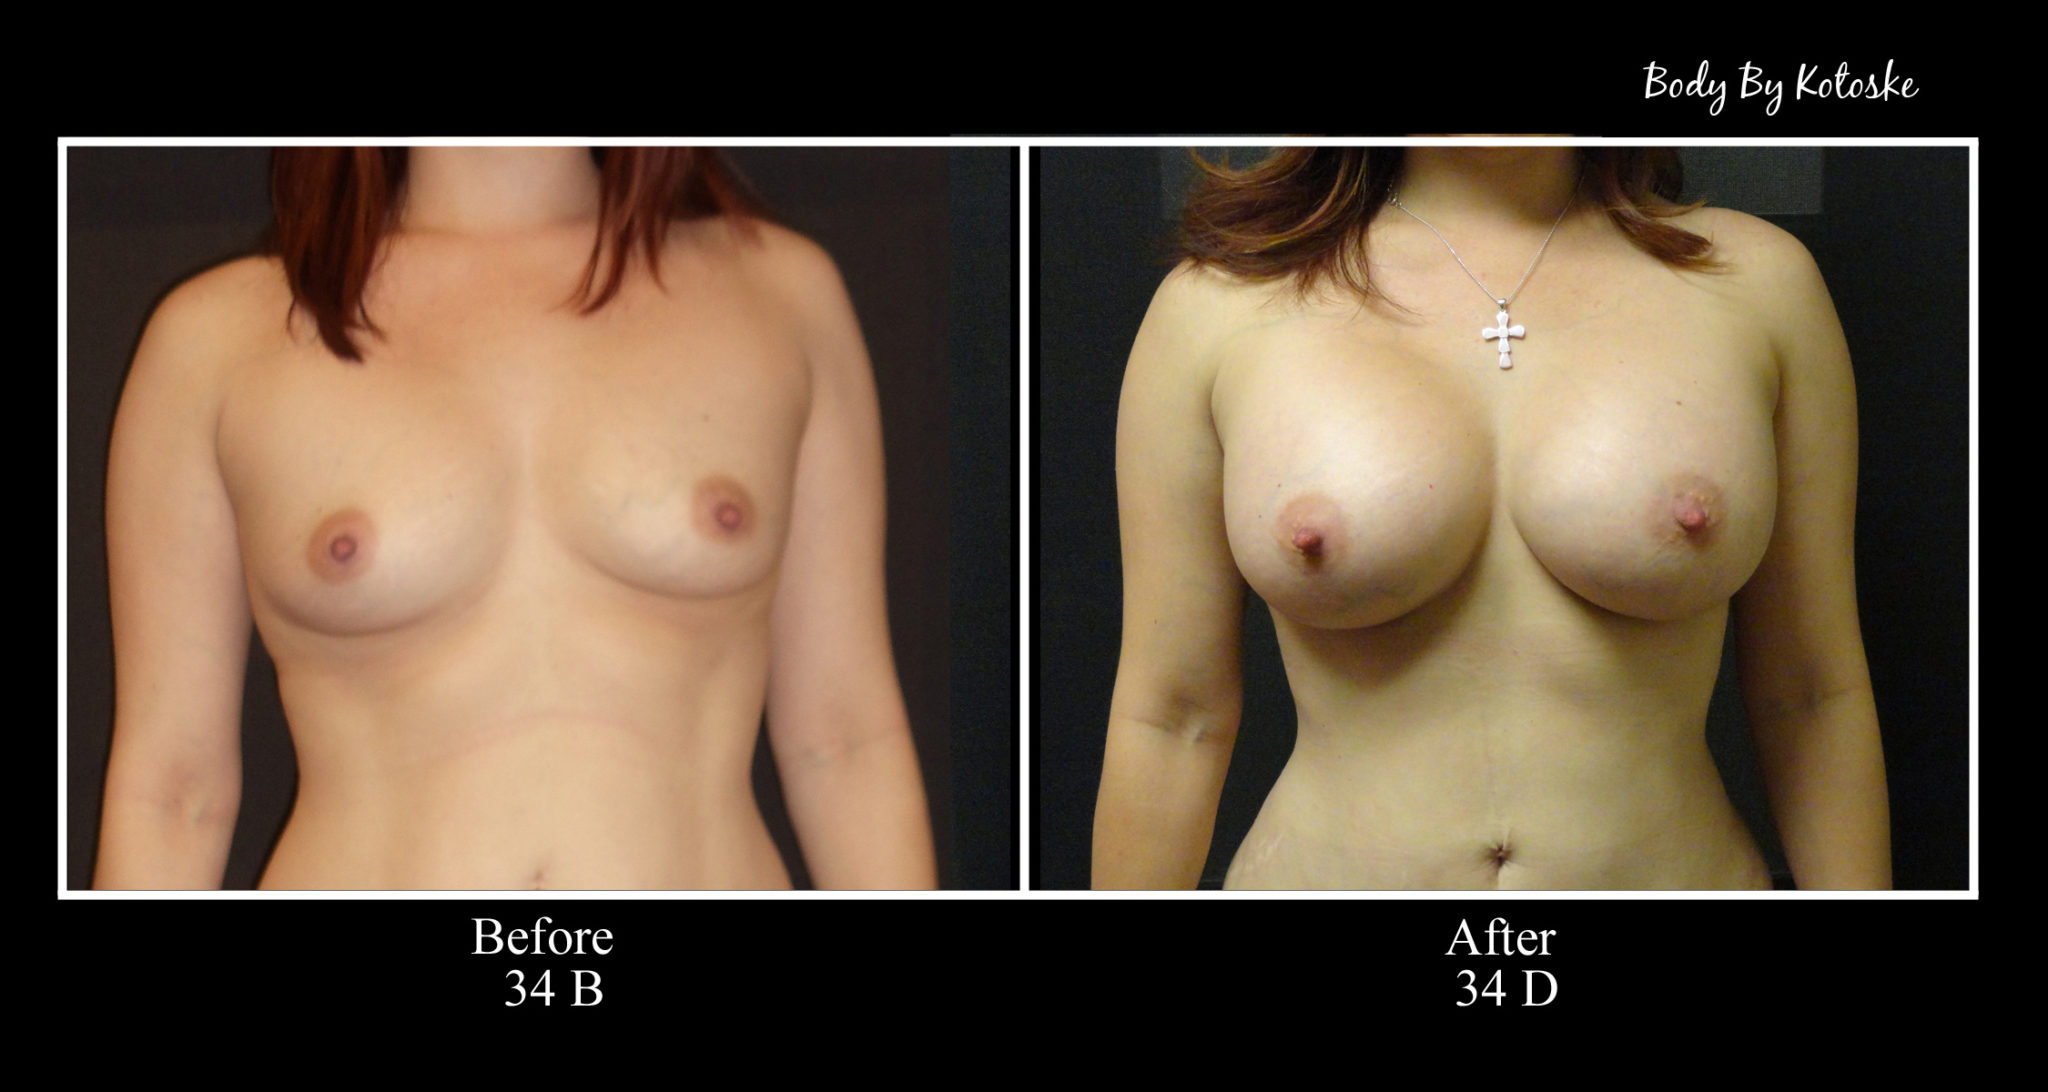 Before and After - Phoenix Cosmetic Surgeon   Body by Kotoske   Phoenix, AZ